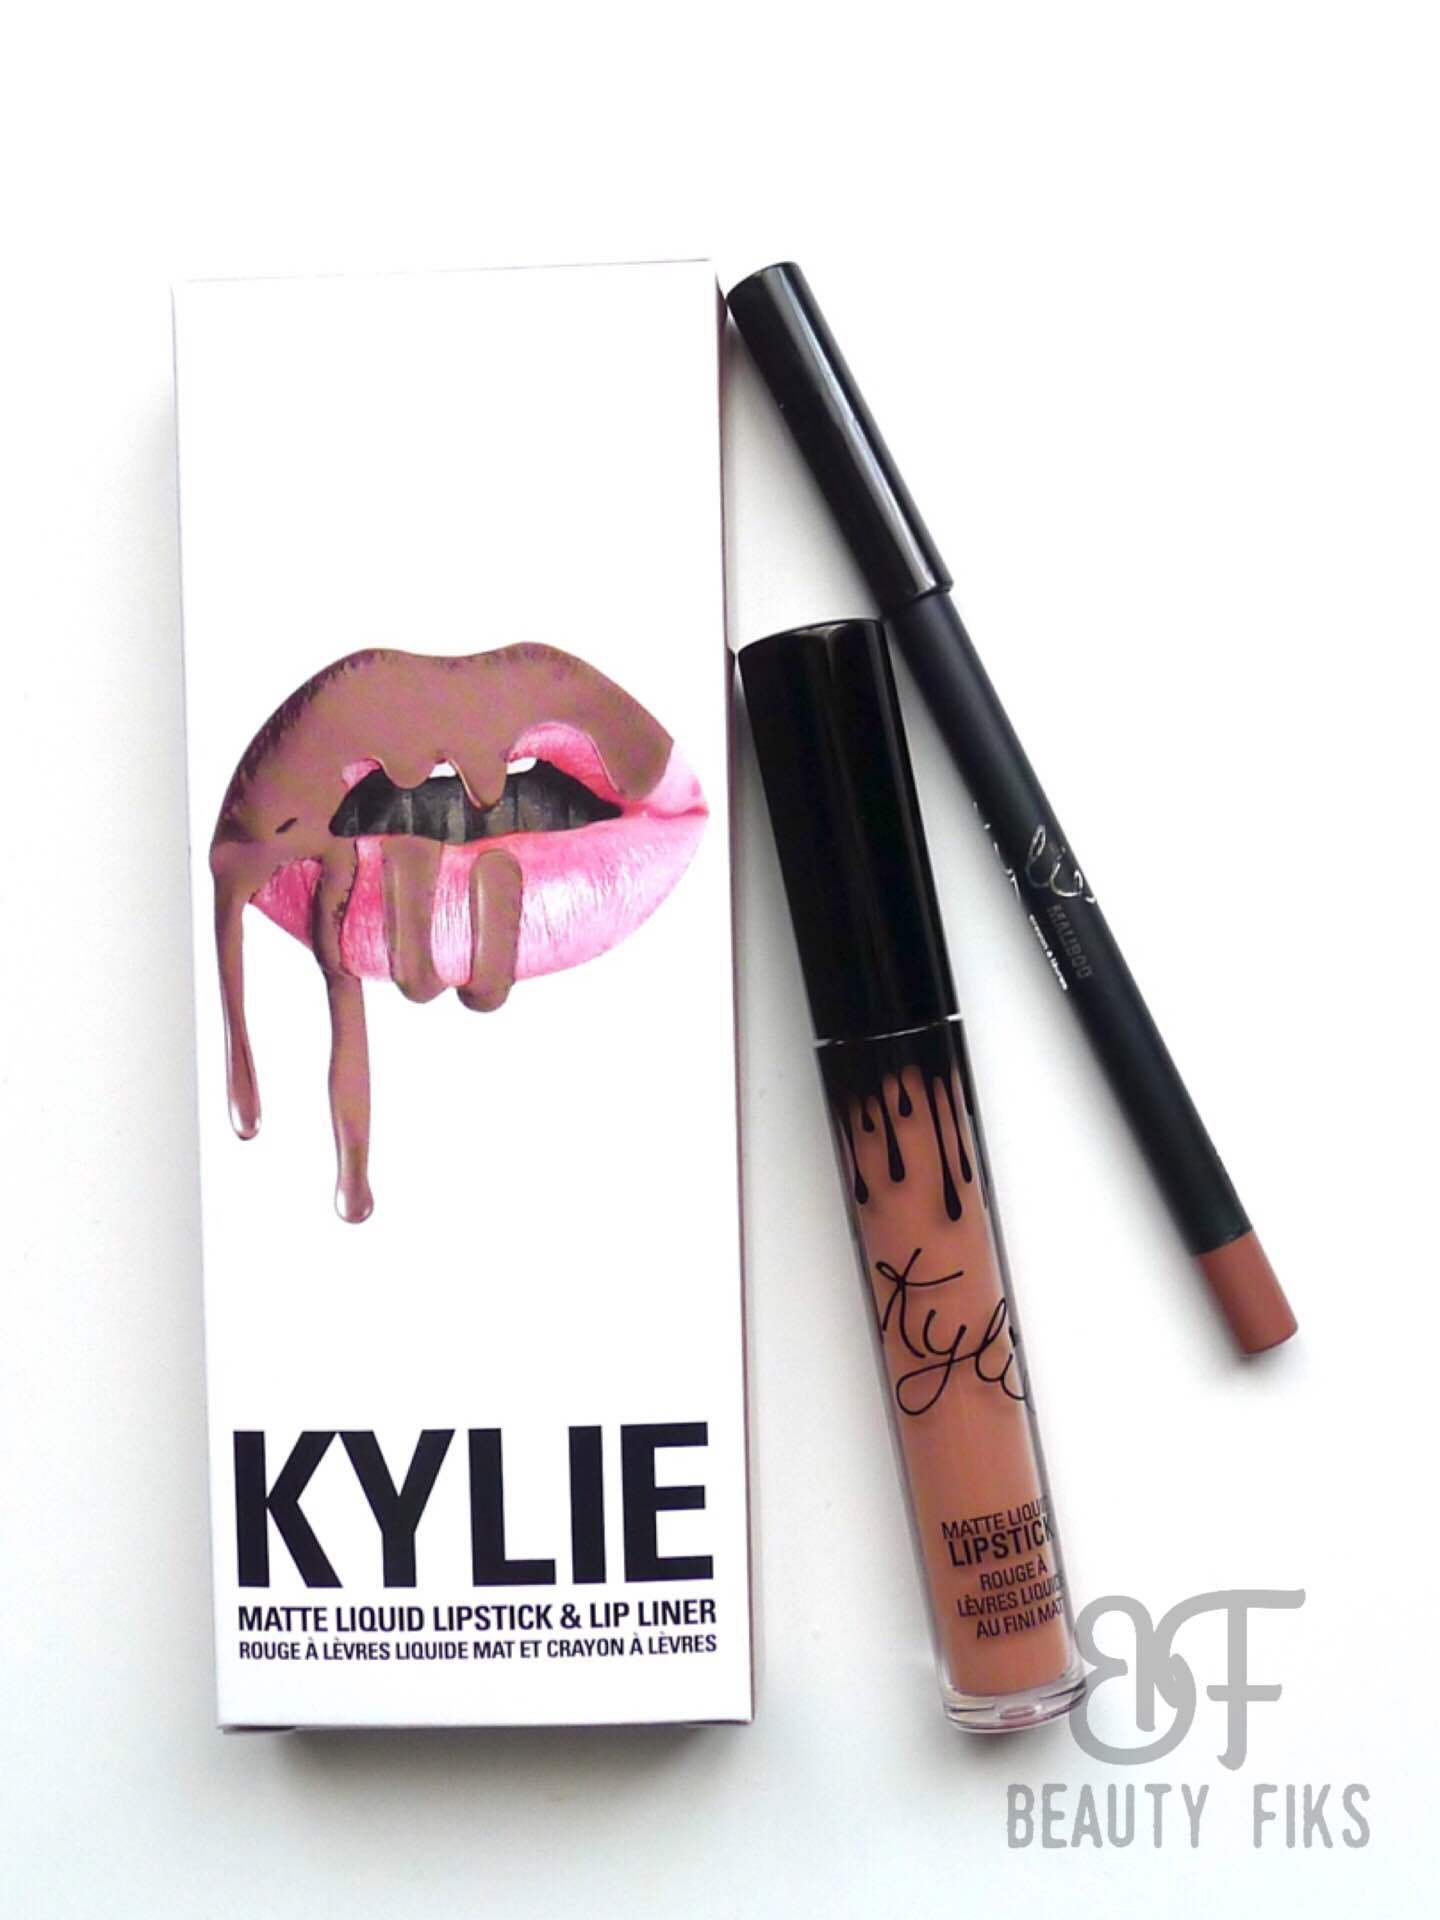 Kylie Cosmetics Dolce K Liquid Lipstick Dupes: Kylie Cosmetics #KylieLipKit By Kylie Jenner